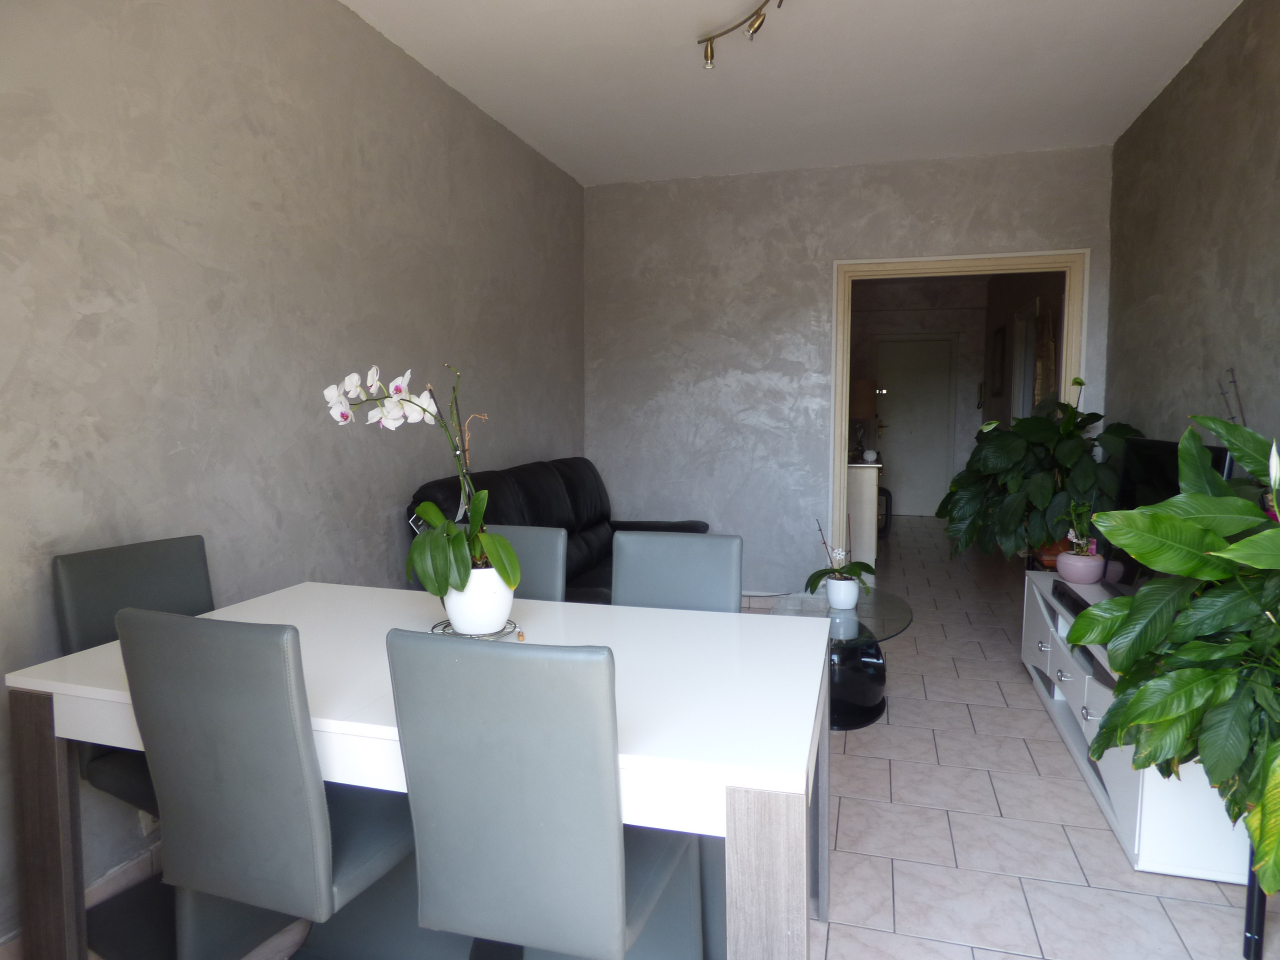 Appartement Nice  4pièce(s) 85 m2/ Fabron/Nice ouest